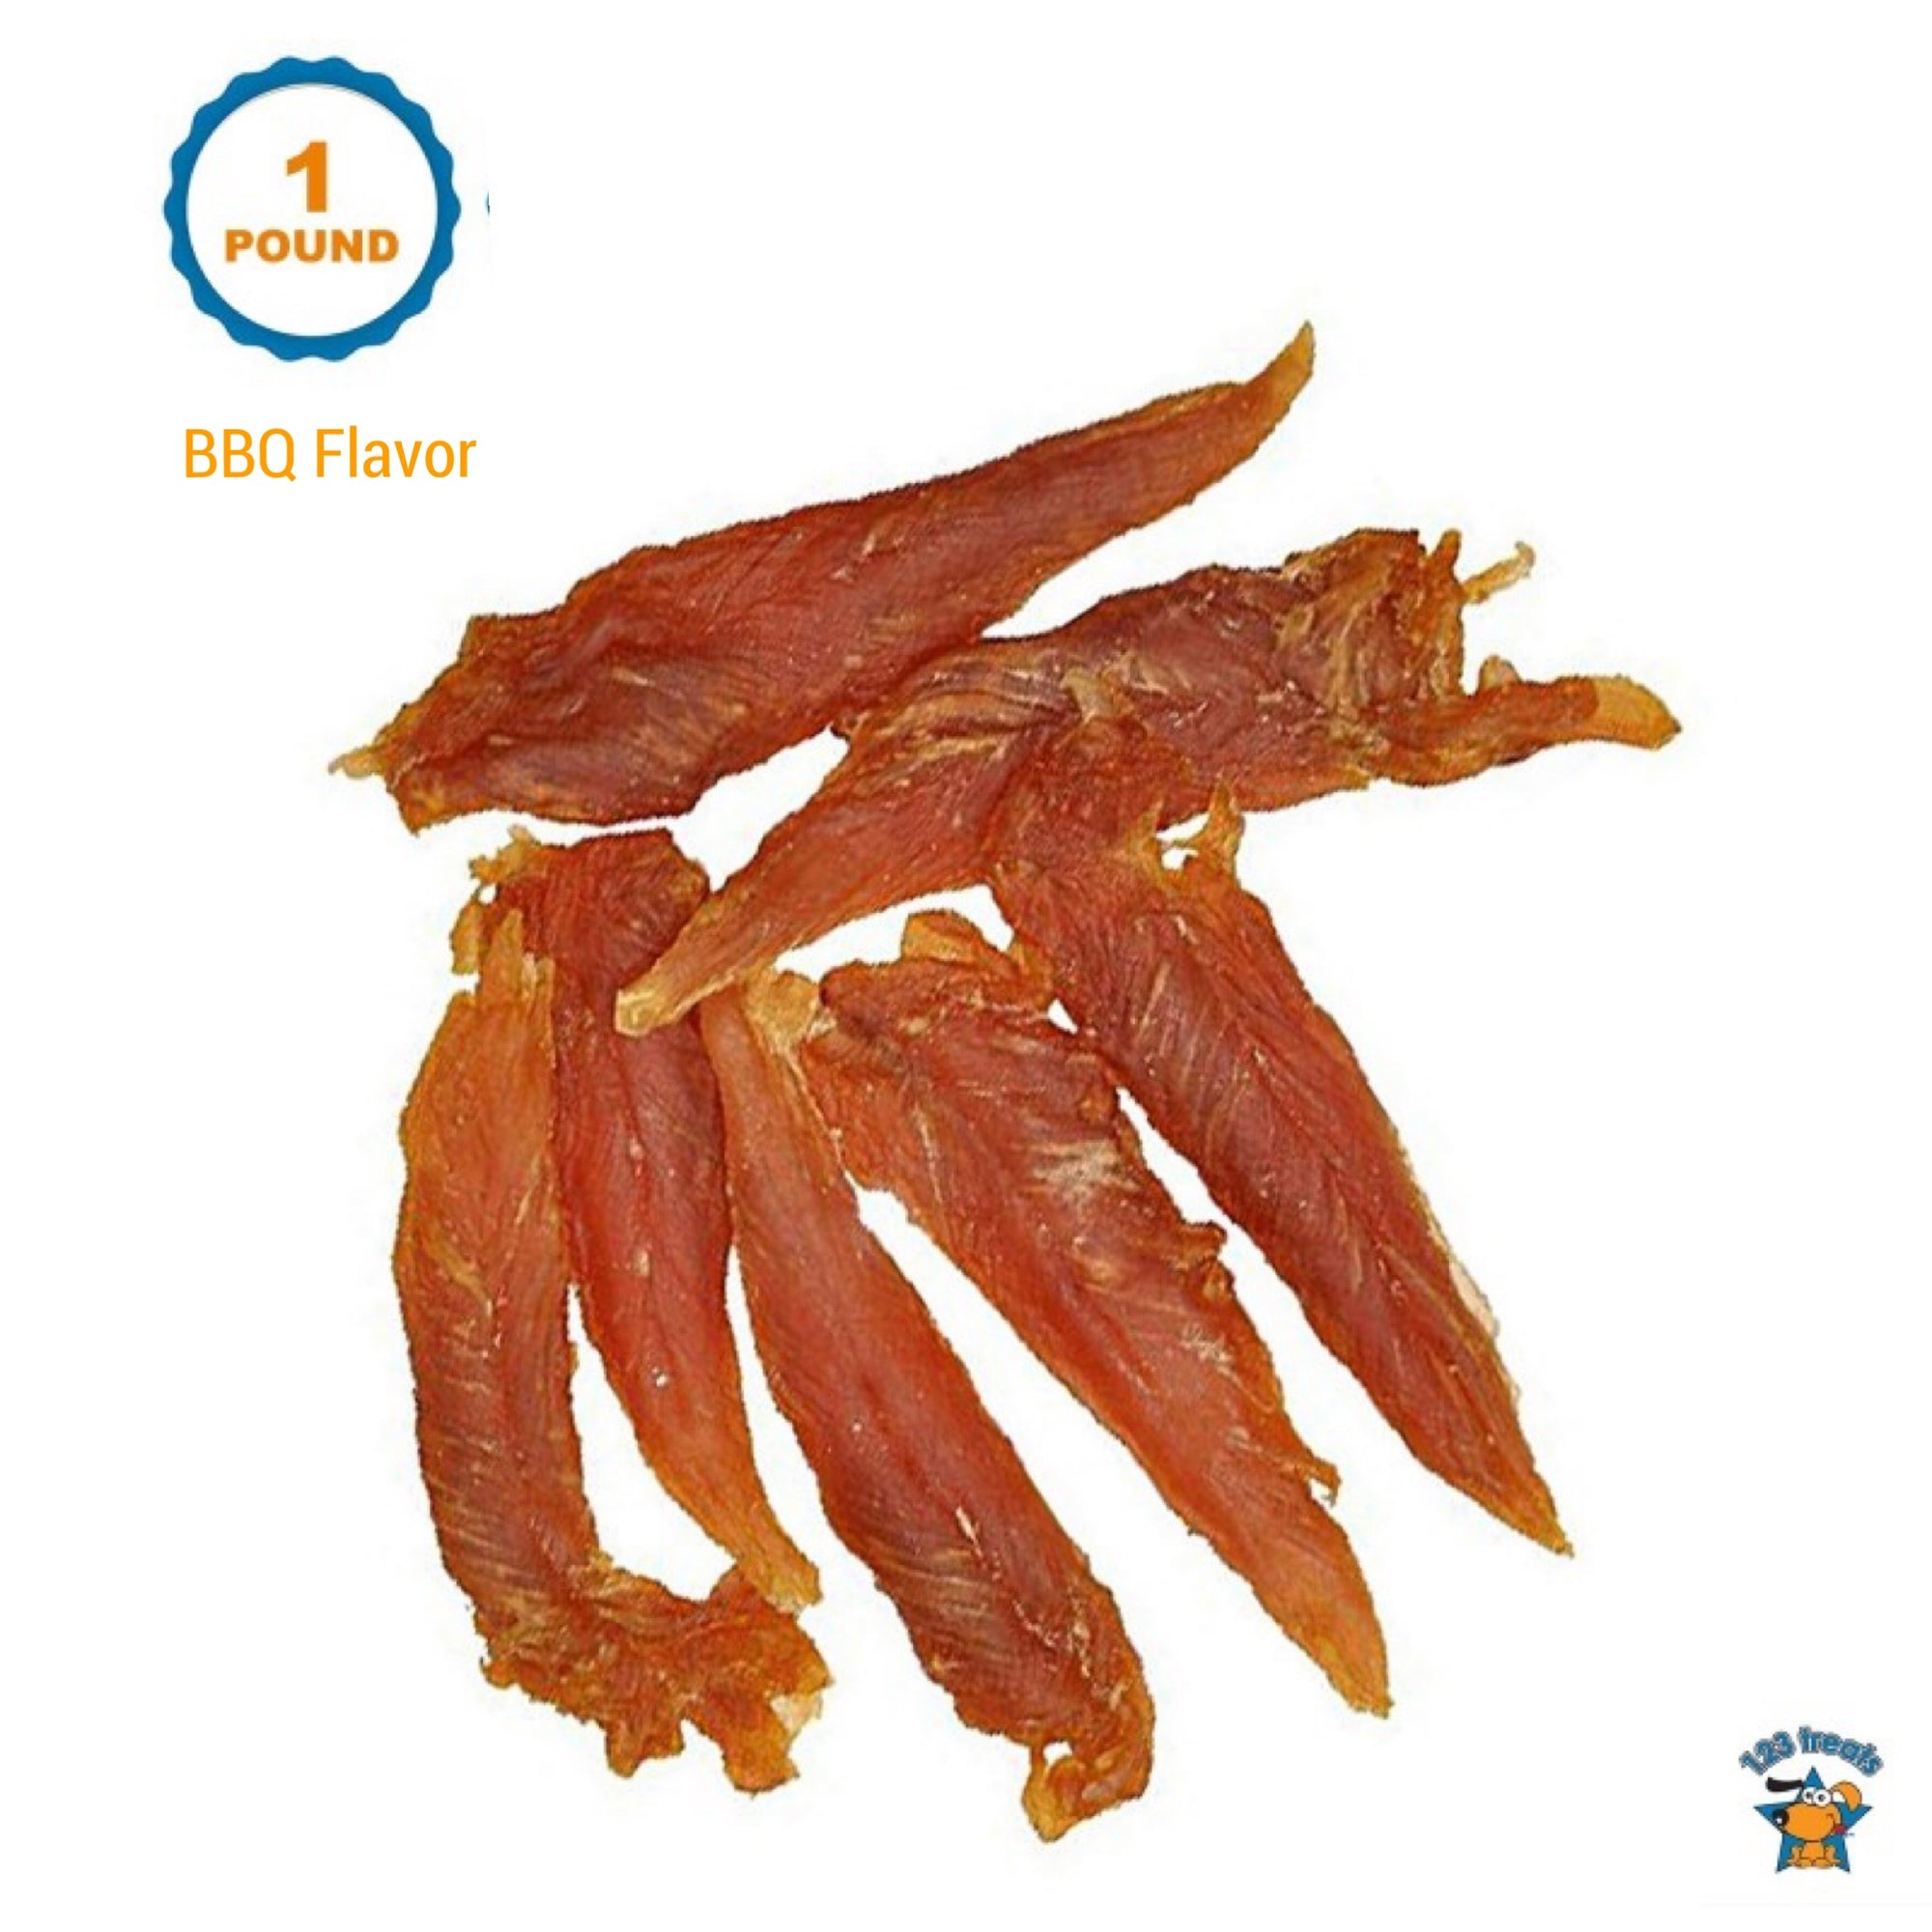 Chicken Jerky BBQ flavor for Dogs Bulk 1Pound | 100% Natural Chicken Dog Treats Dog Treats | Made in Brazil | 123 Treats